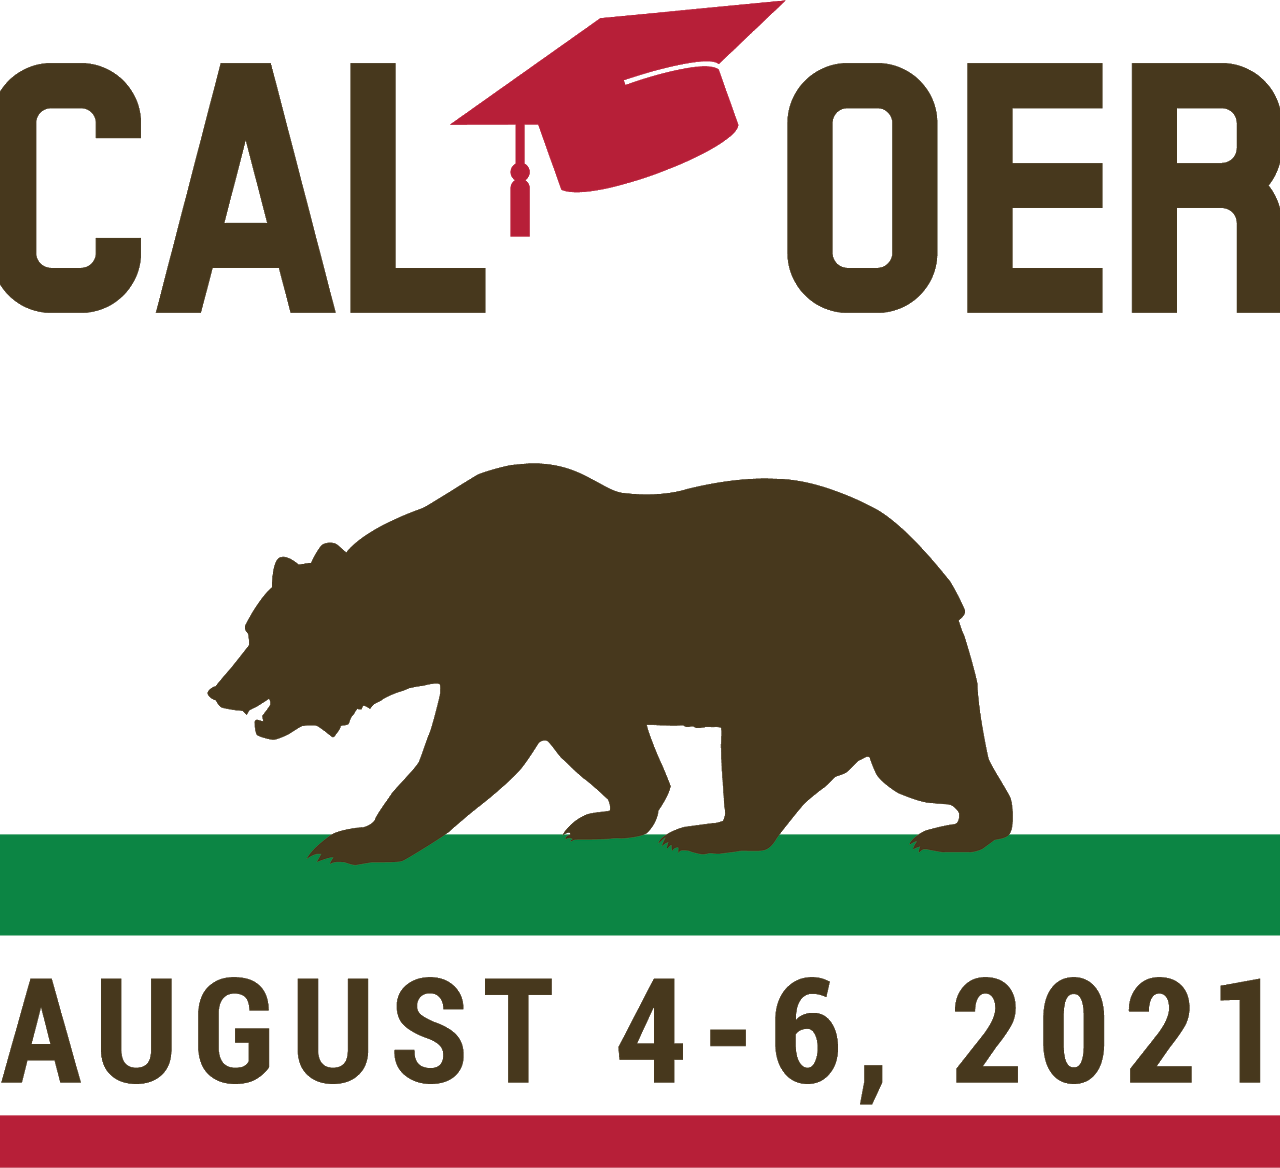 Cal OER Conference, August 4-6, 2021